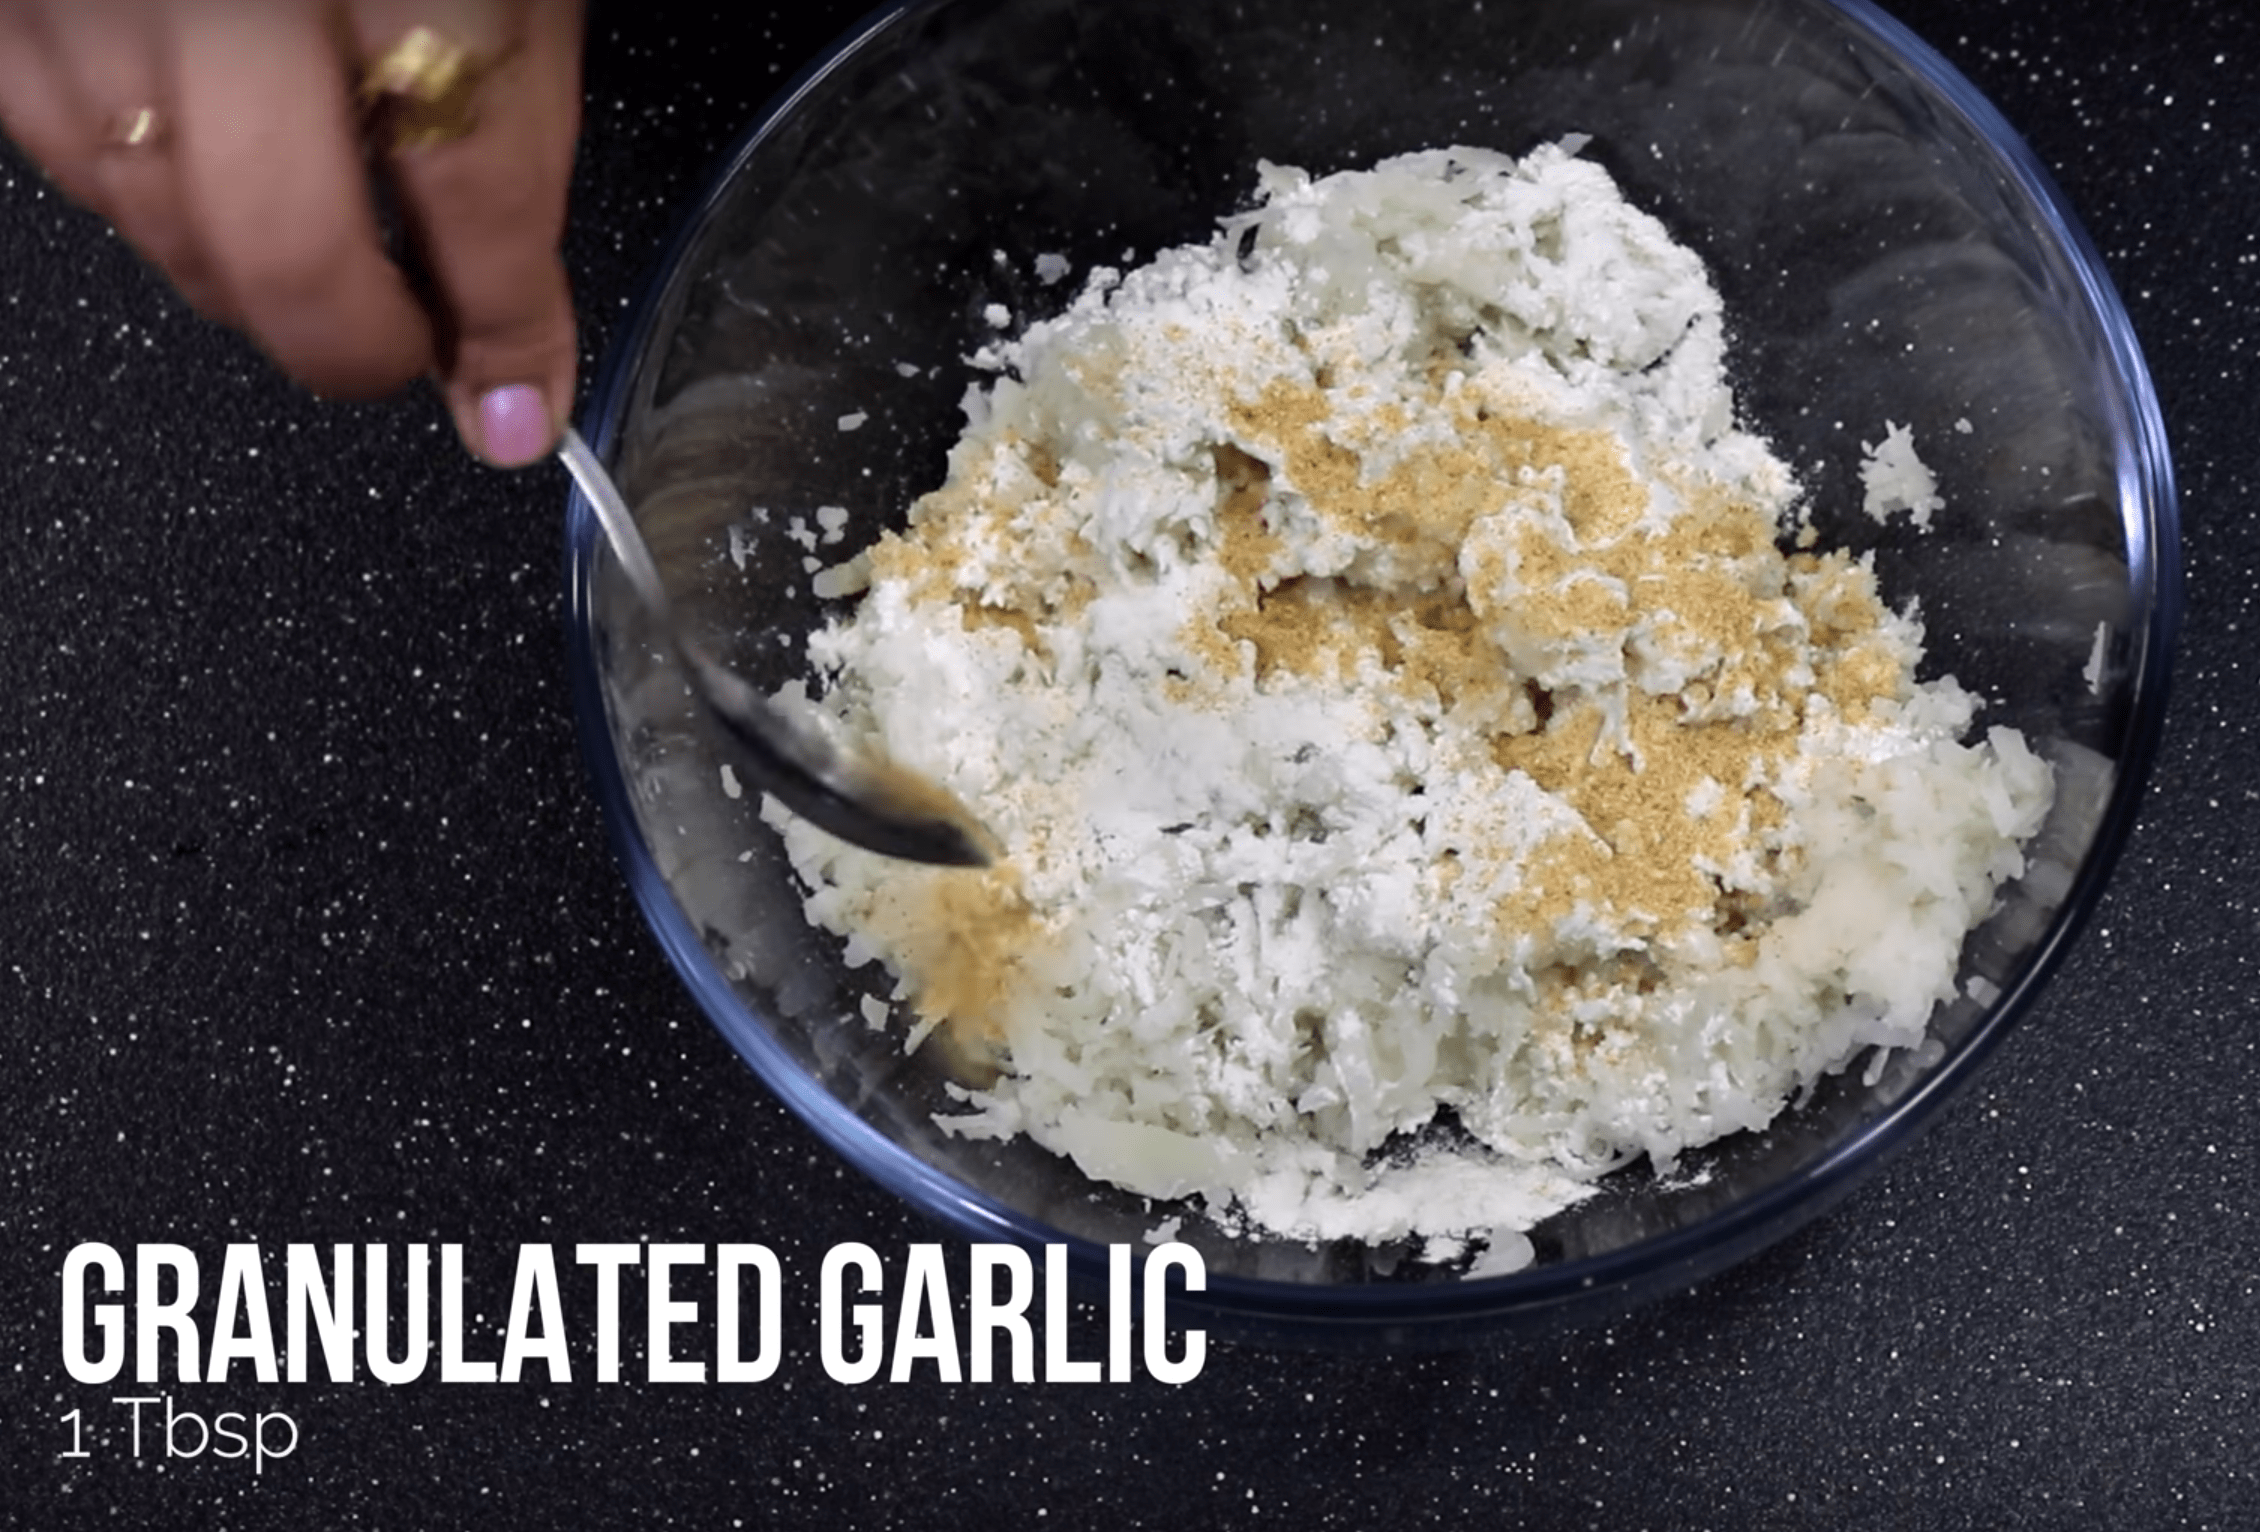 Add 1 Tbsp Granulated Garlic for Tater Tots Recipe